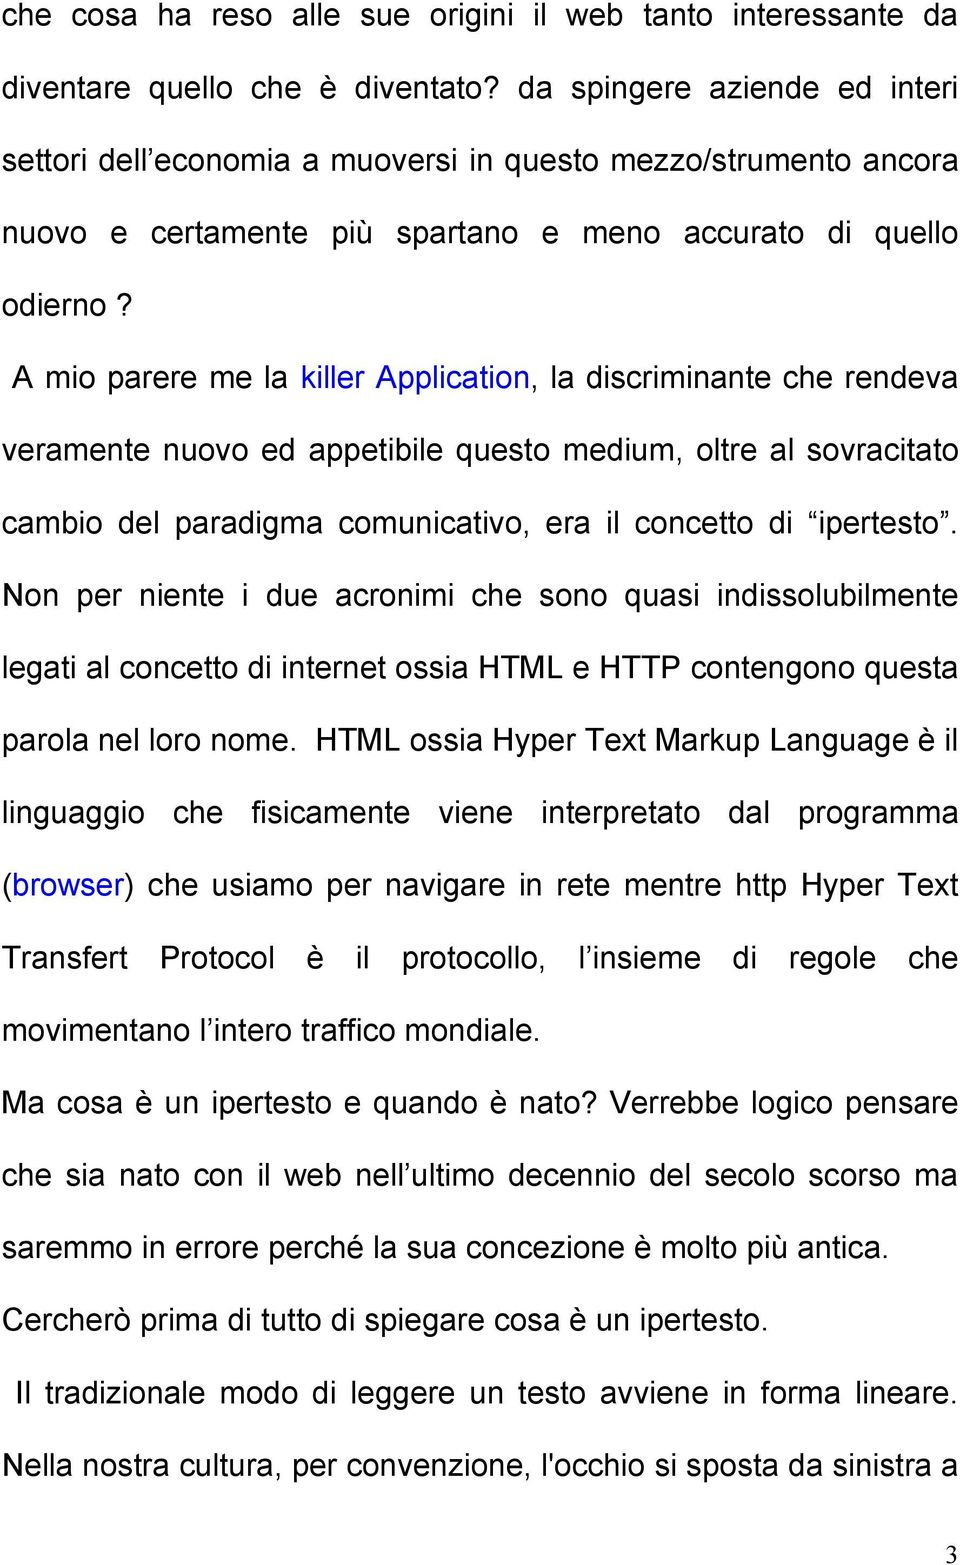 A mio parere me la killer Application, la discriminante che rendeva veramente nuovo ed appetibile questo medium, oltre al sovracitato cambio del paradigma comunicativo, era il concetto di ipertesto.